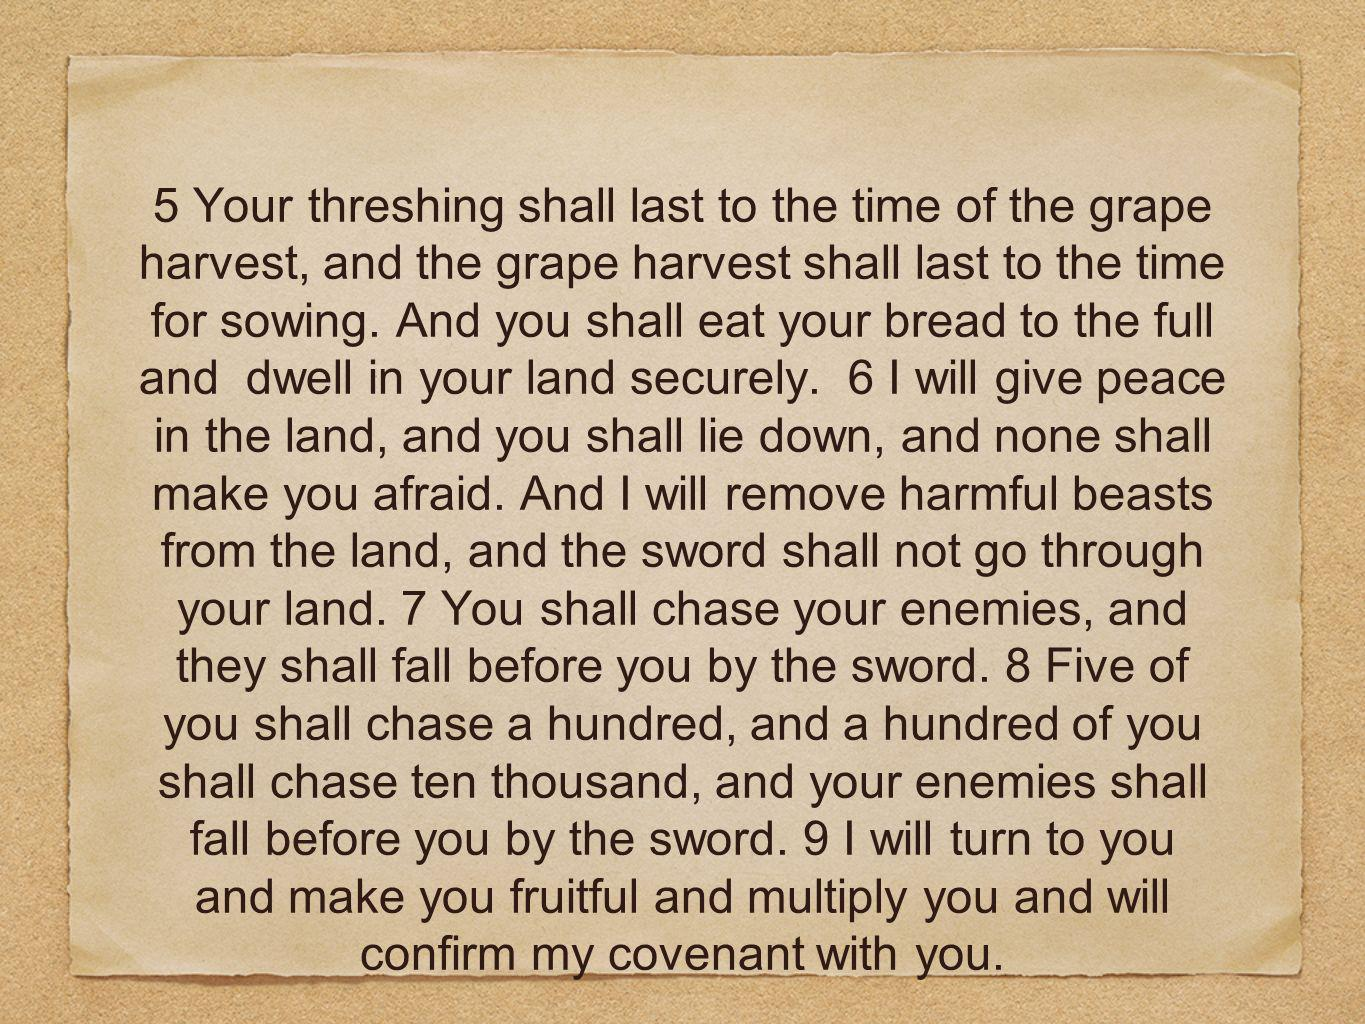 5 Your threshing shall last to the time of the grape harvest, and the grape harvest shall last to the time for sowing.